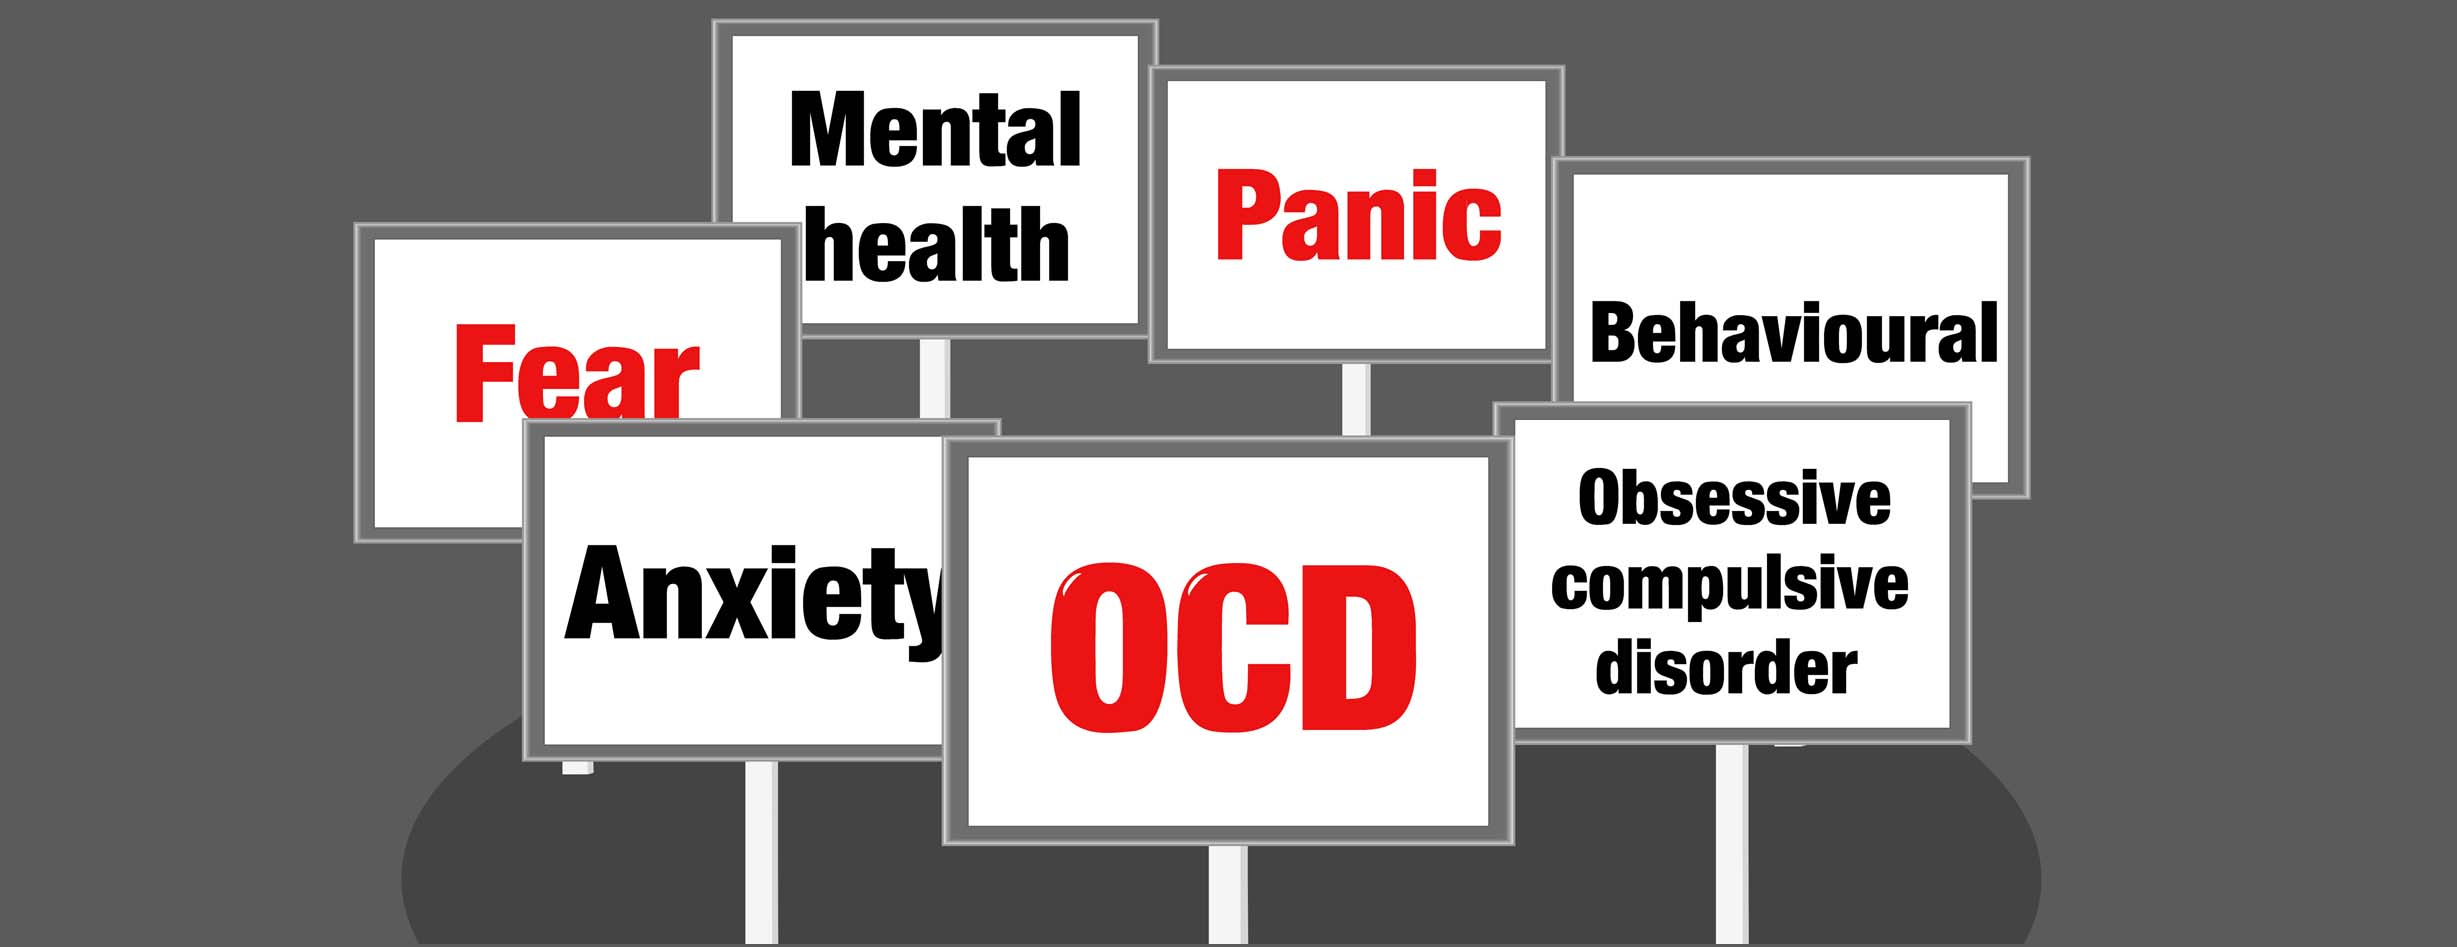 Obsessive and Compulsive Disorder